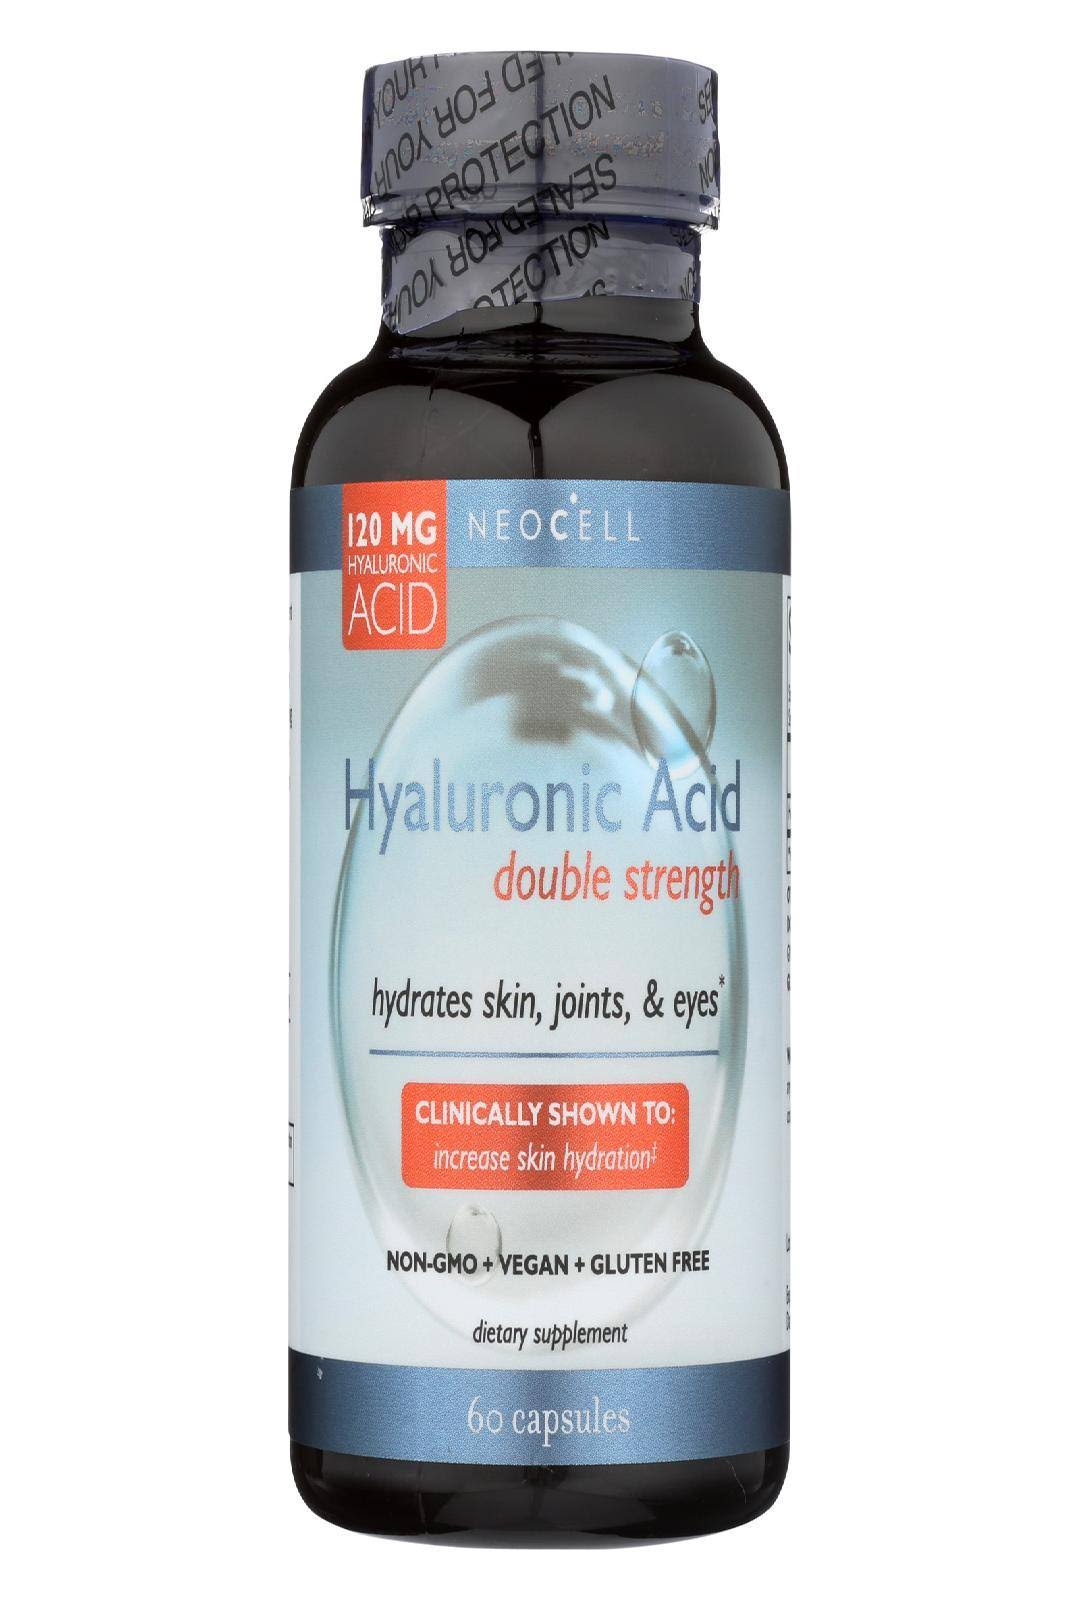 NeoCell Hyaluronic Acid Double Strength - 120mg, 60 ct